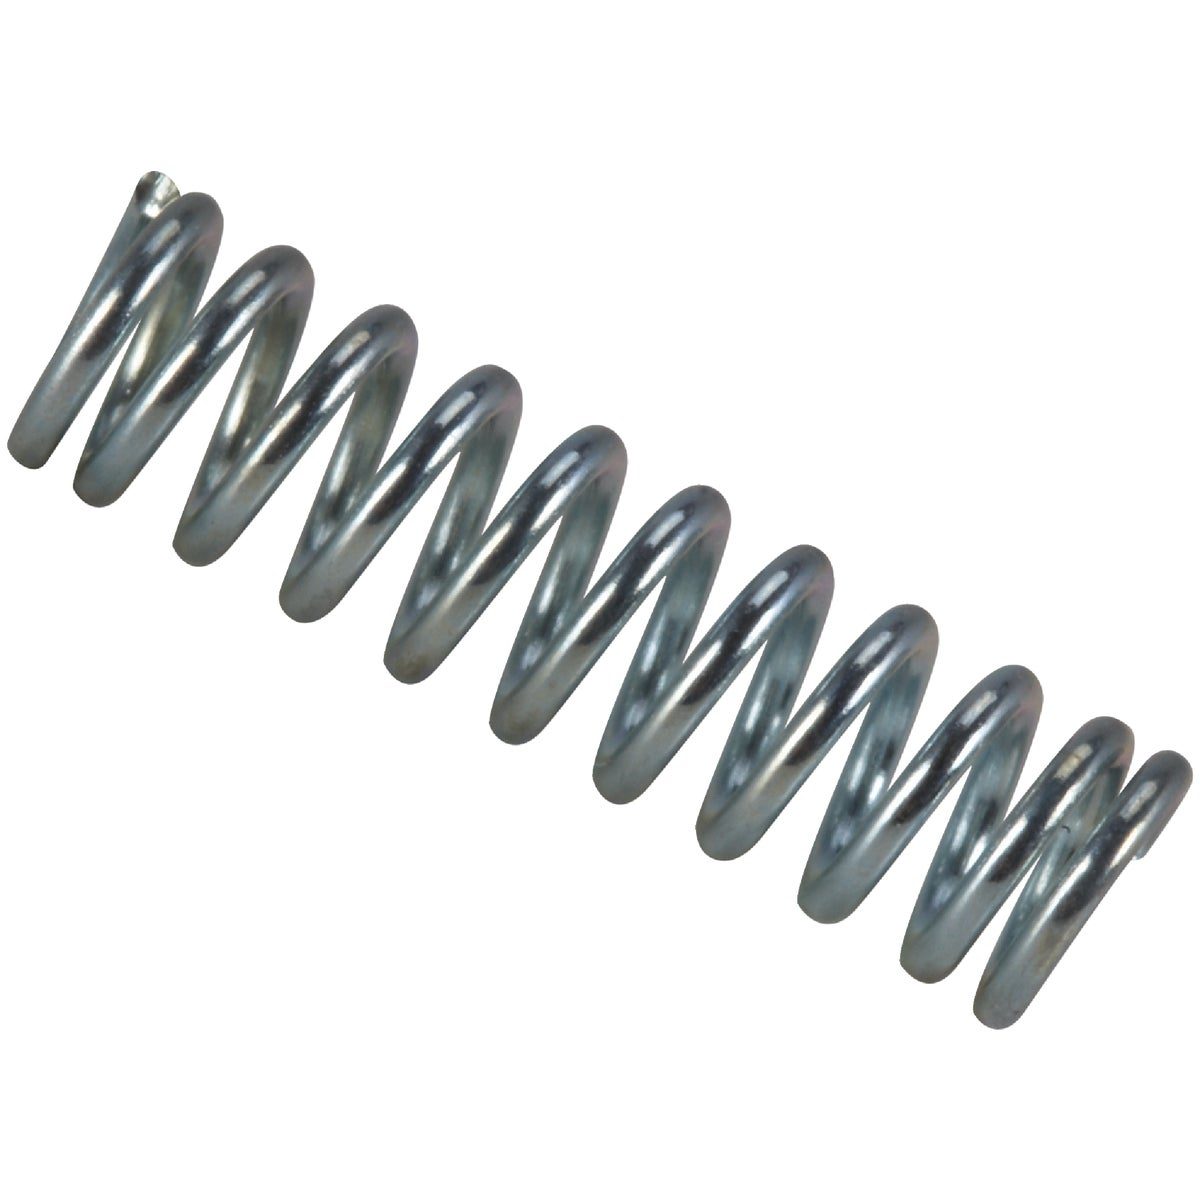 COMPRESSION SPRING - C-702 by Century Spring Corp